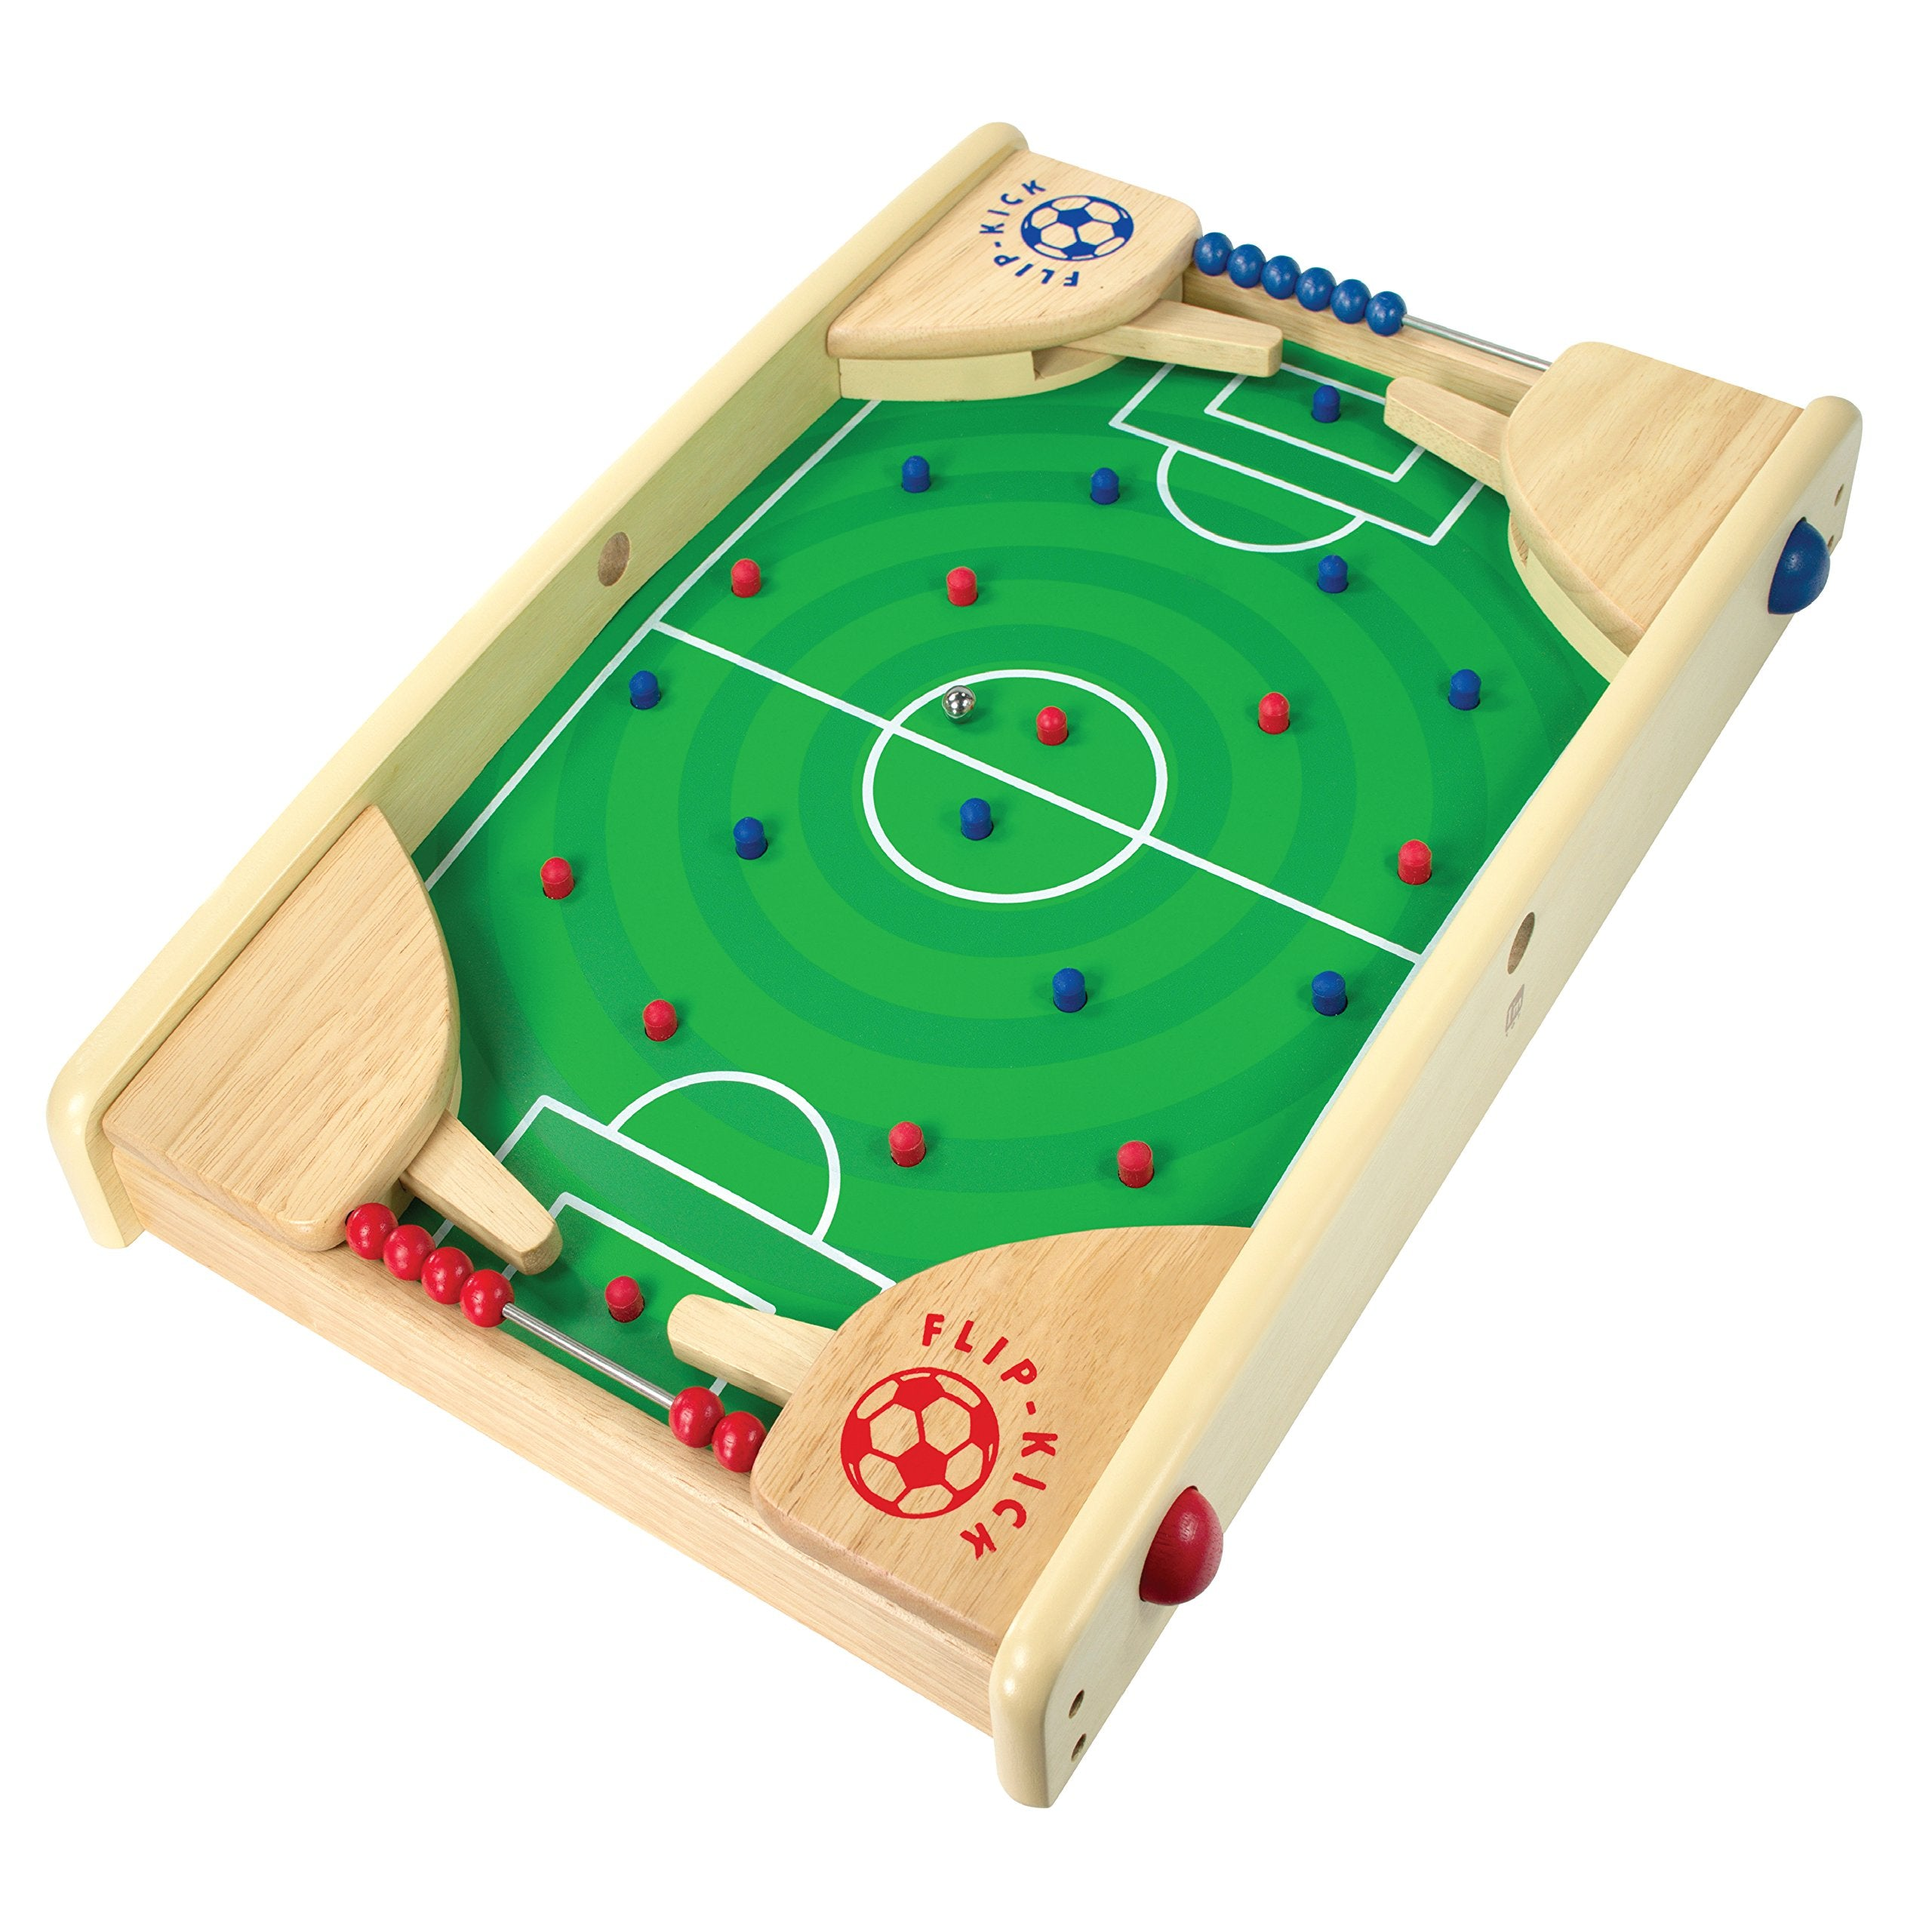 Awe Inspiring Im Wooden Tabletop Football Soccer Pinball Games Indoor Portable Sport Table Board For Kids And Bidorbuy Co Za Interior Design Ideas Gentotryabchikinfo